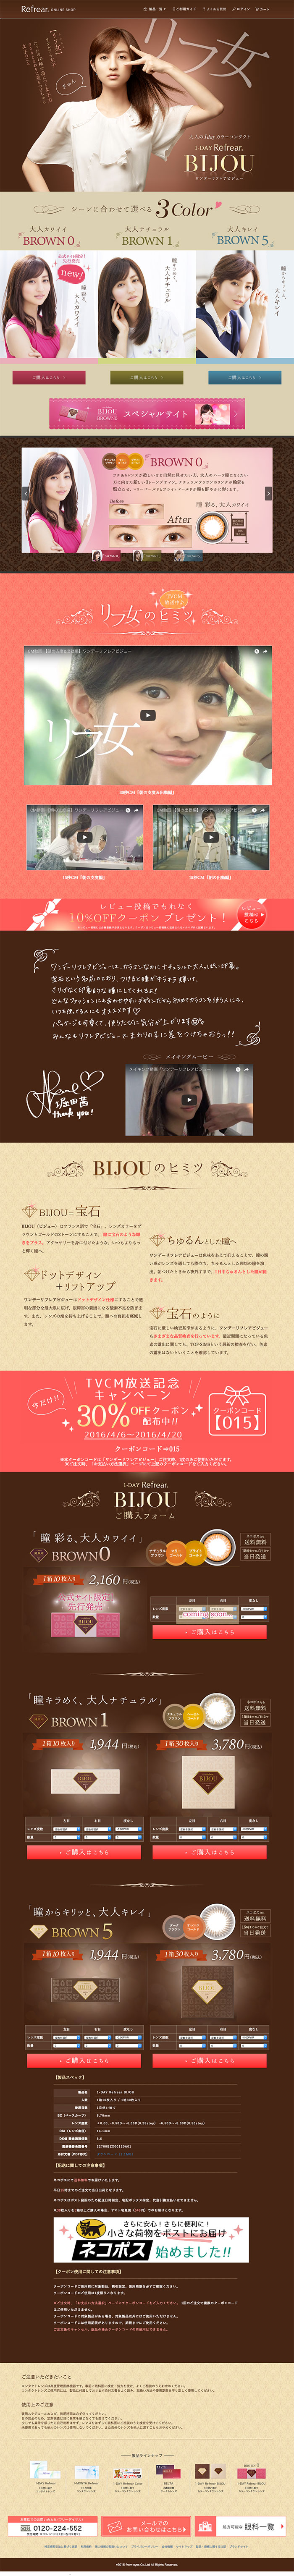 31-shopping-refrear-jp-color-1day-bijou-1460820151188